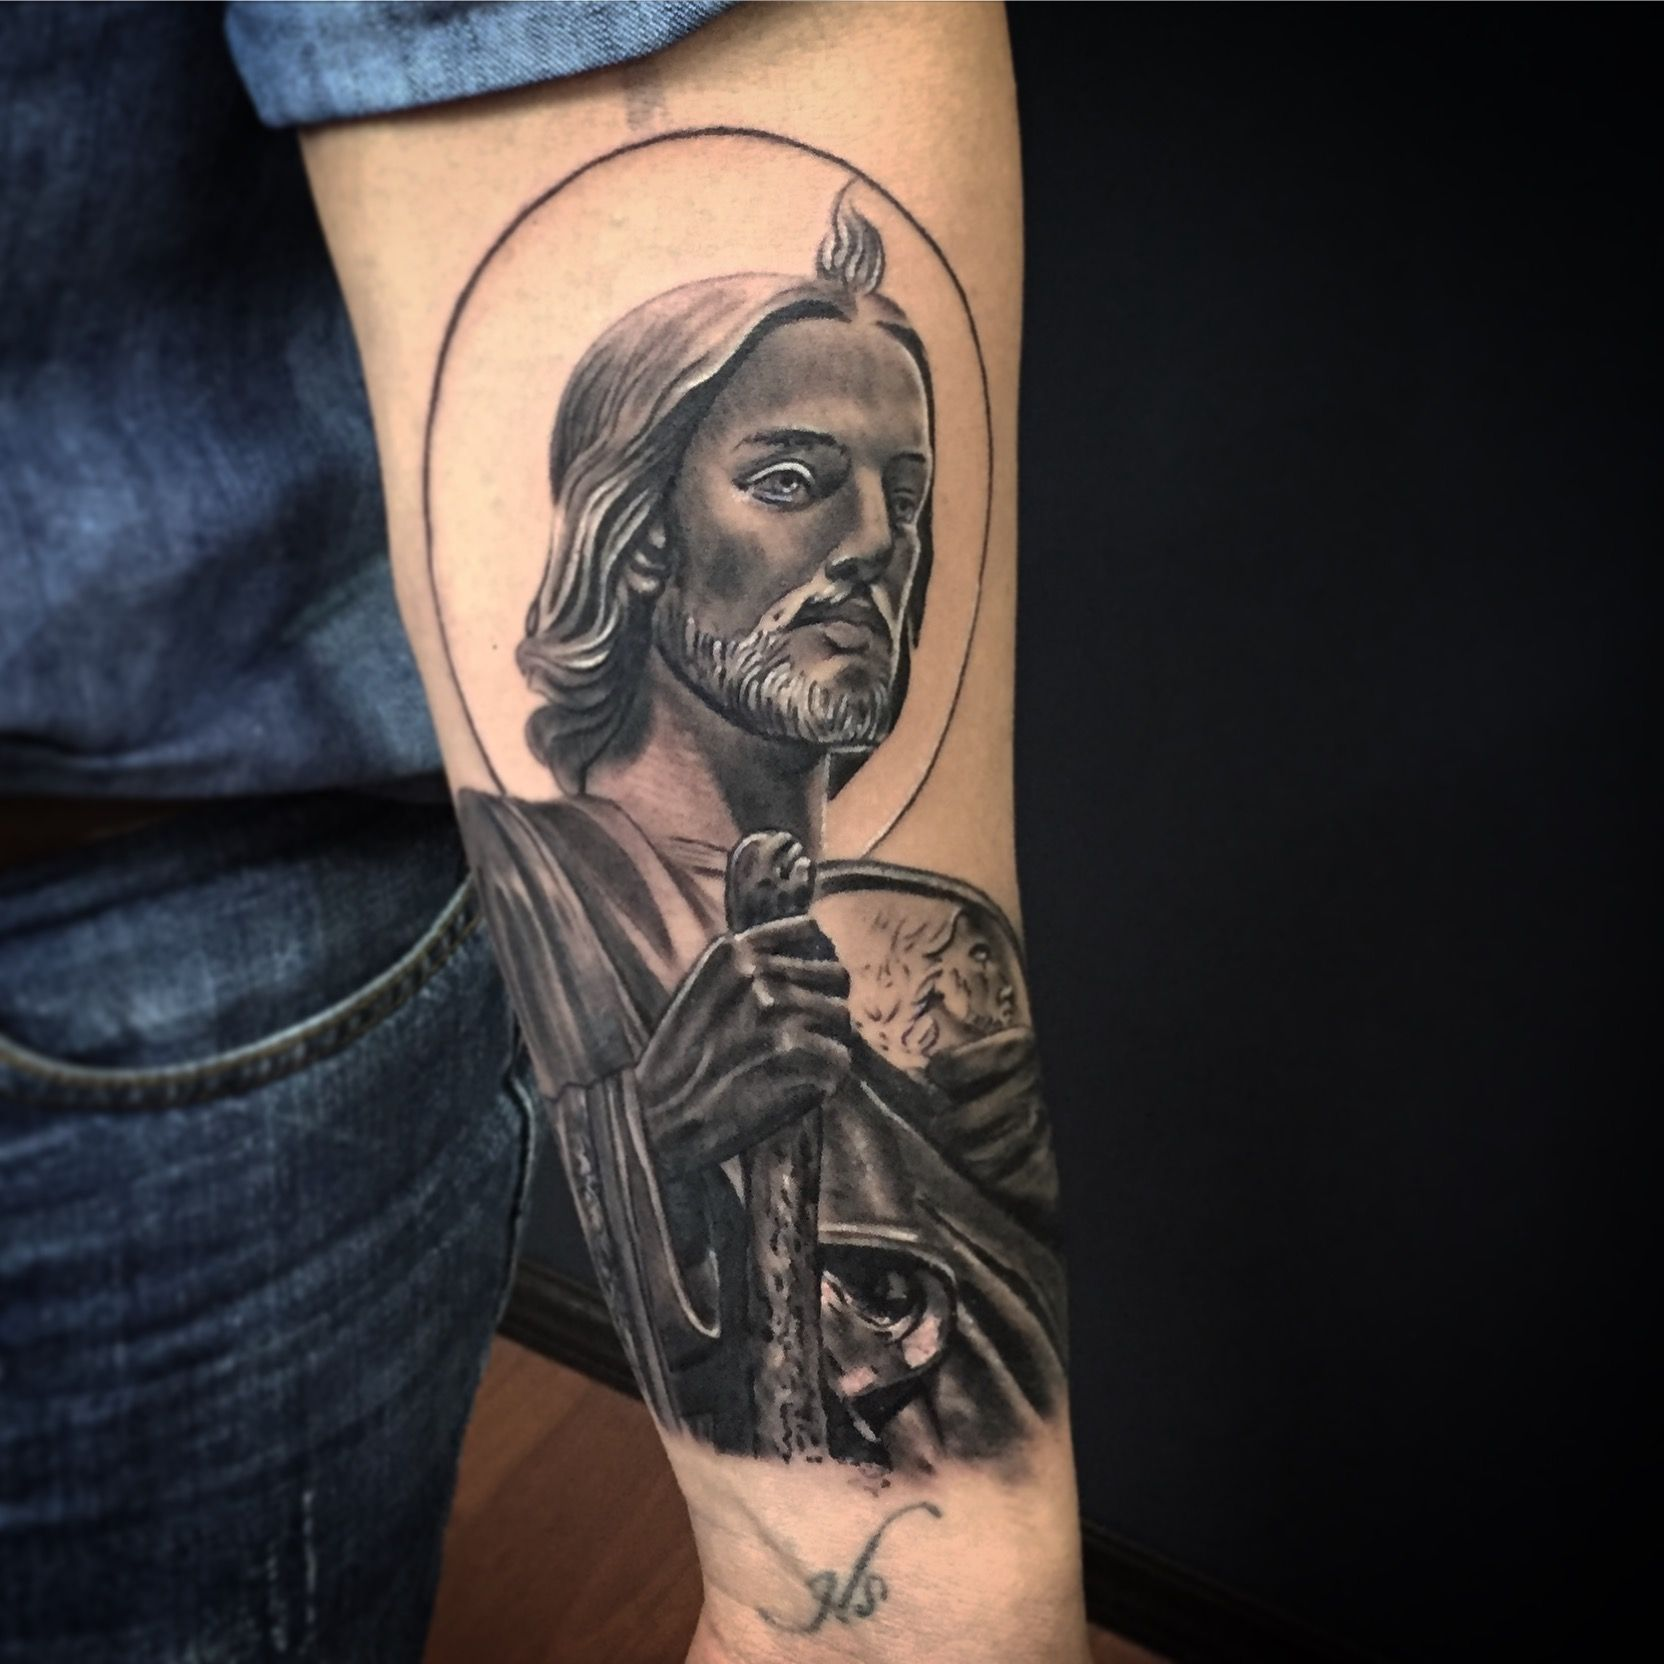 San Judas Tadeo Tattoo Tattoos Tatuajes Originales Tatuajes De